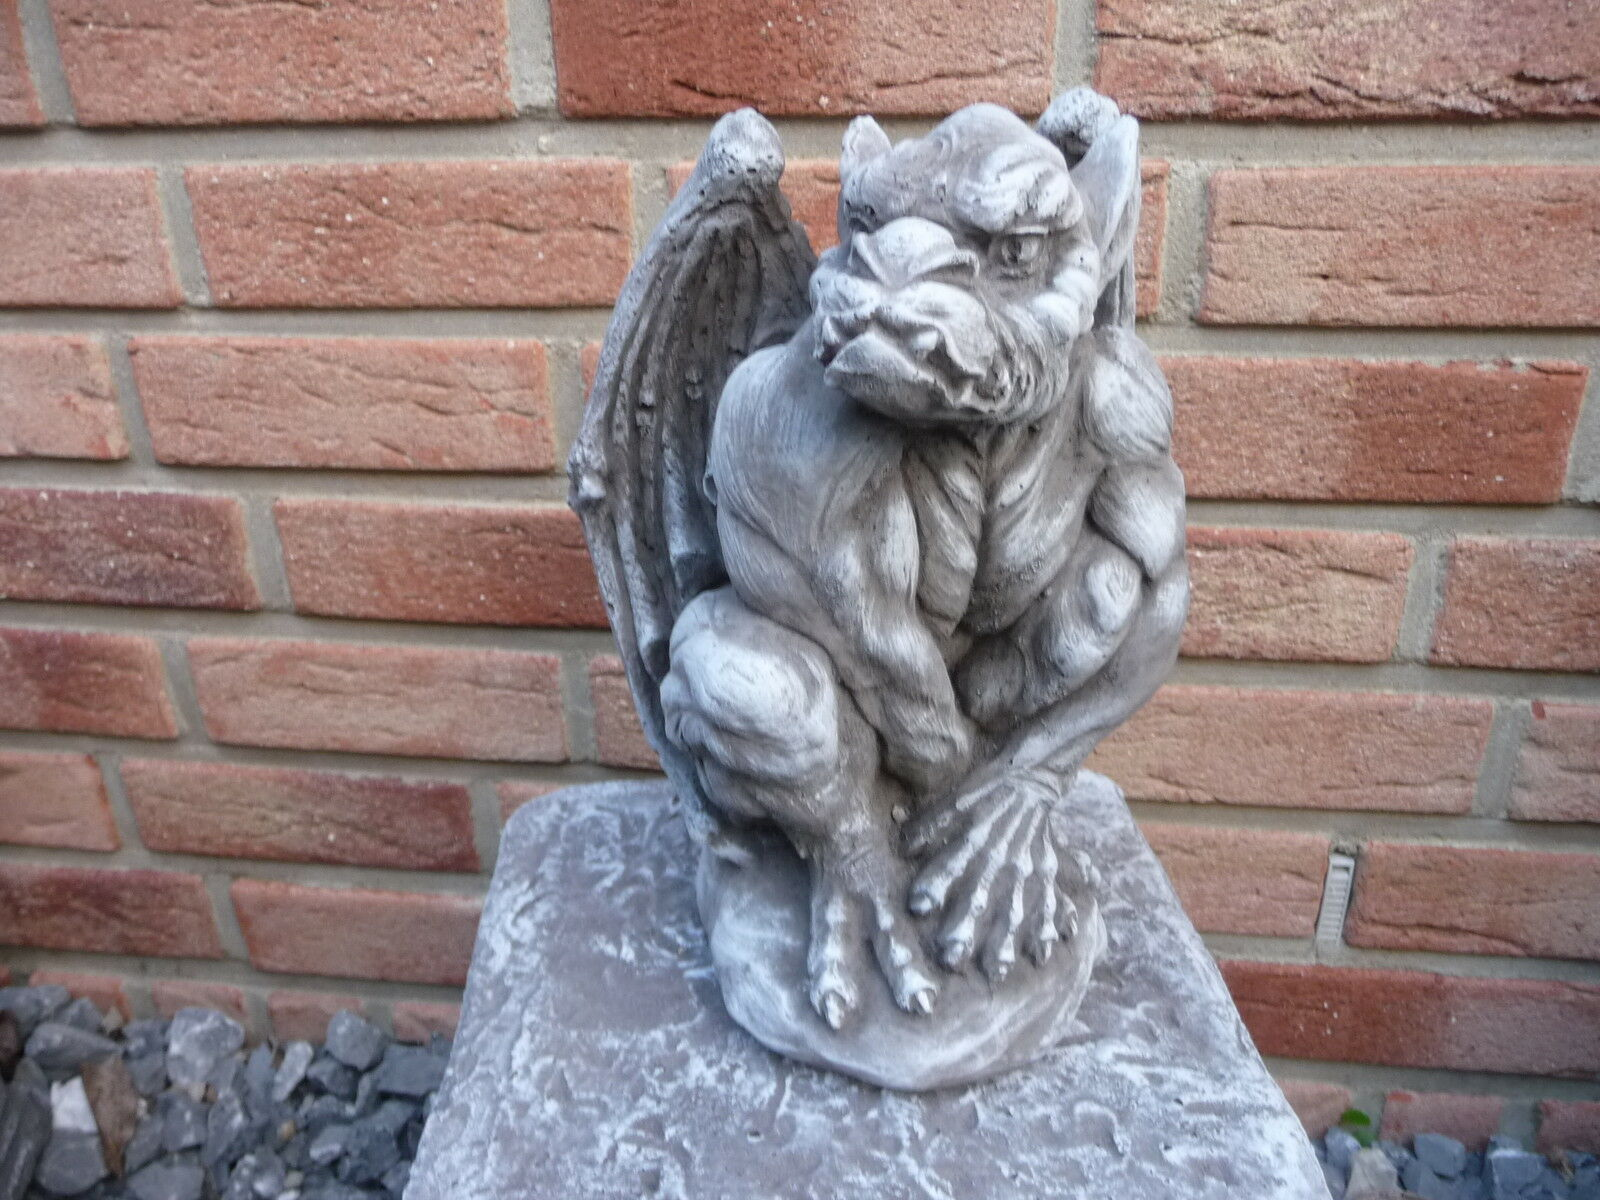 gartenfigur gargoyle figur steinfigur f r garten deko teich fantasiefigur eur 44 00 picclick de. Black Bedroom Furniture Sets. Home Design Ideas